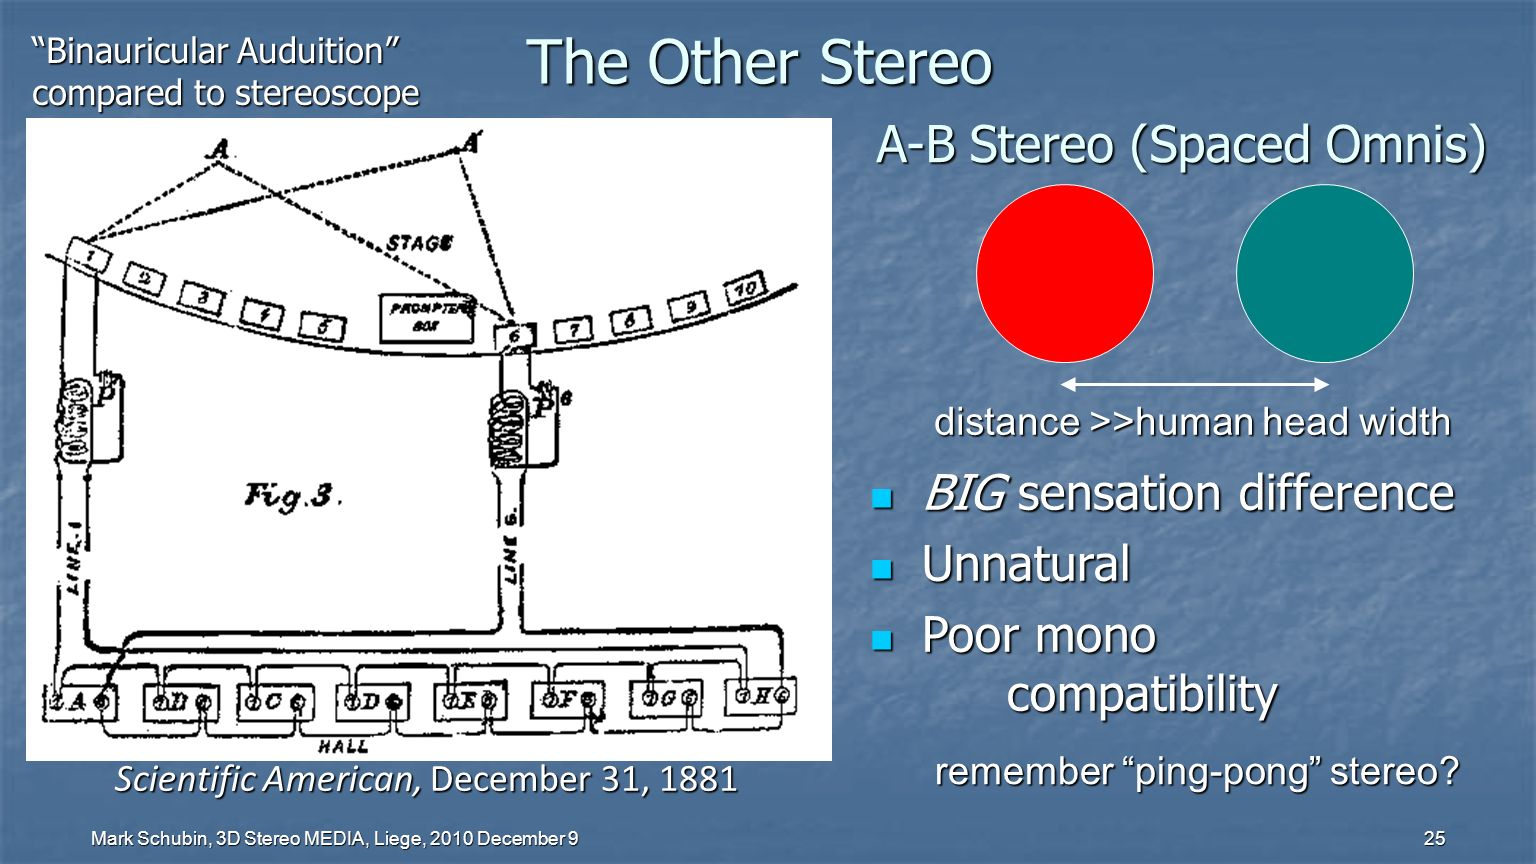 Mark Schubin, 3D Stereo MEDIA, Liege, 2010 December 9 24 Origins of Stereoscopy 1833 Wheatstone 1833 Wheatstone adjustable distance adjustable distance 1849 Brewster 1849 Brewster lenticular (lensed) lenticular (lensed) 1851 Holmes 1851 Holmes adjustable prismatic lenticular adjustable prismatic lenticular